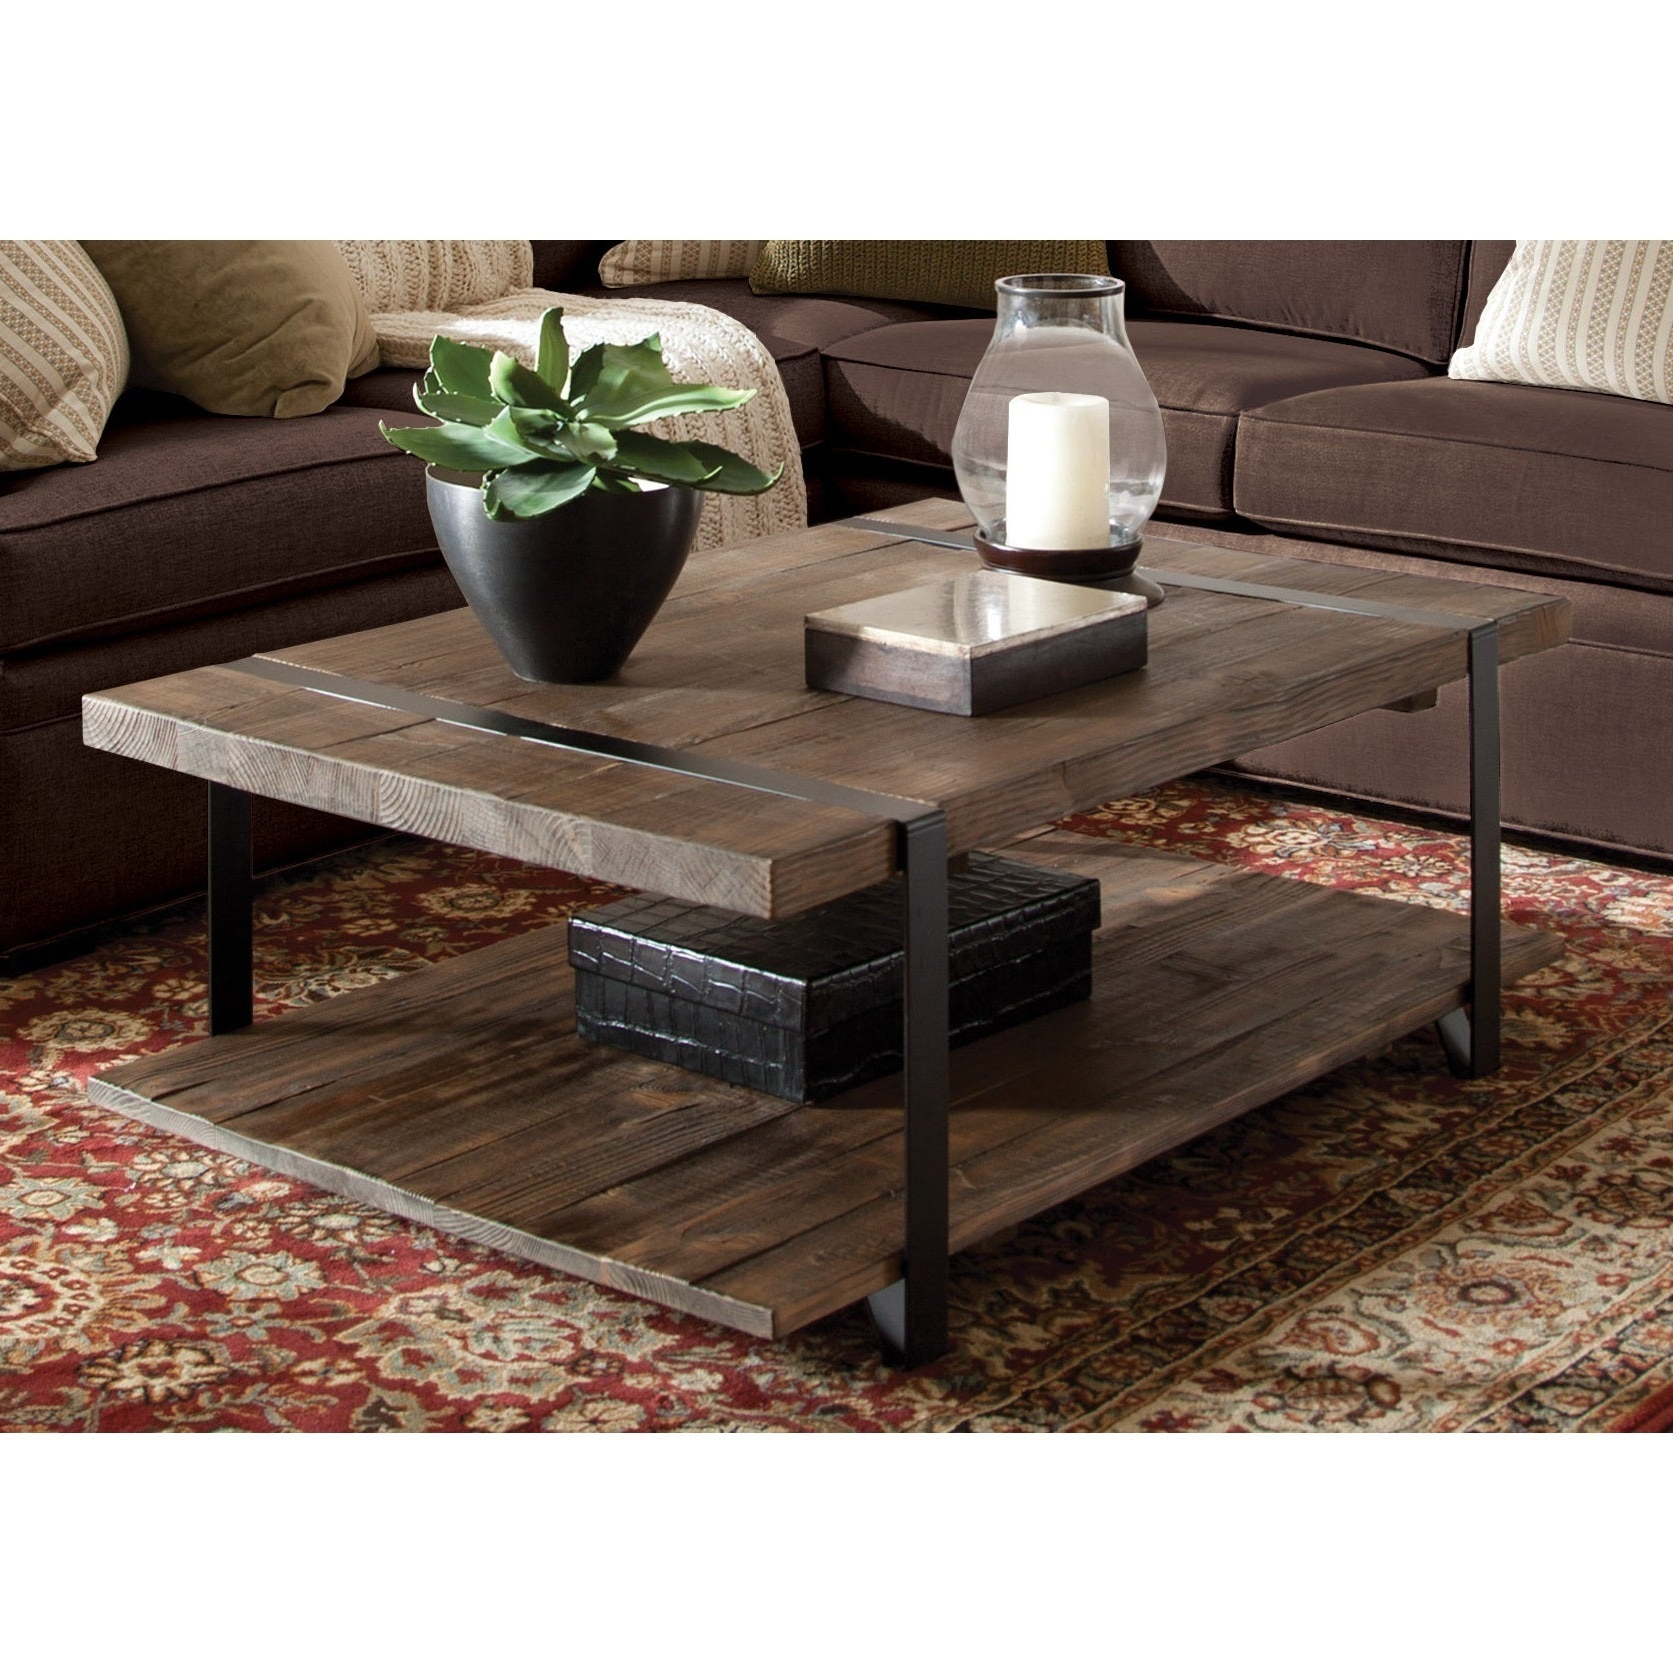 Fashionable Carbon Loft Lawrence Reclaimed Cube Coffee Tables Intended For Carbon Loft Kenyon Natural Finished Reclaimed Wood Large Coffee Table (View 12 of 20)